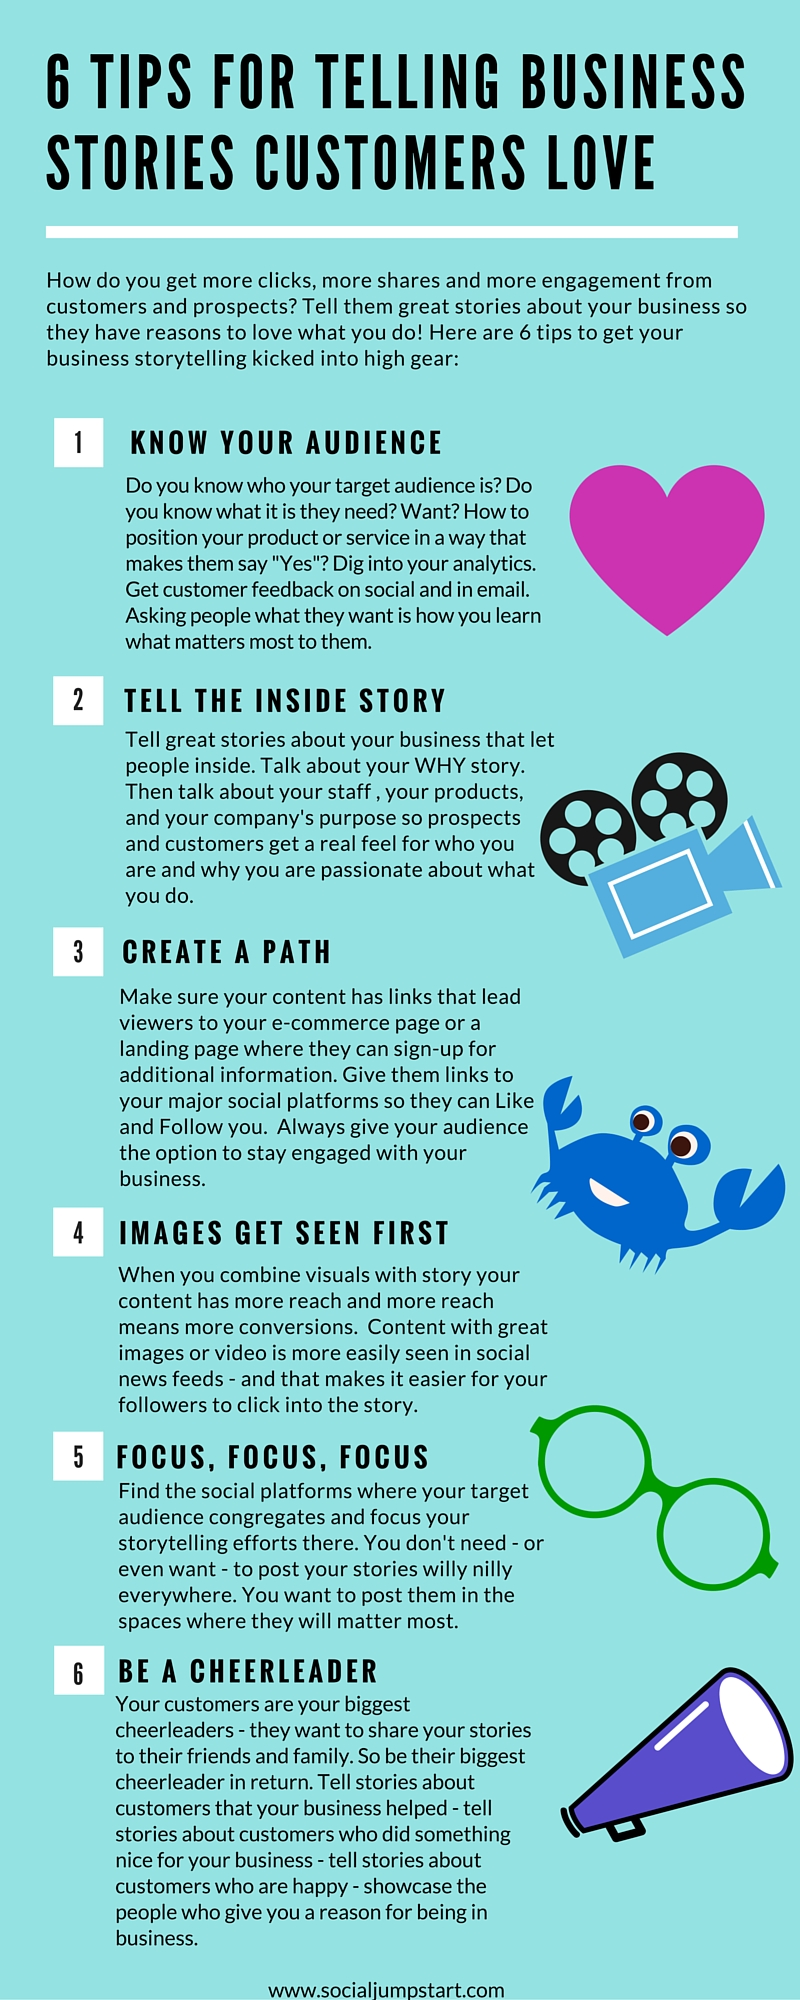 6 Tips for Telling Business Stories Customers Love [Infographic]